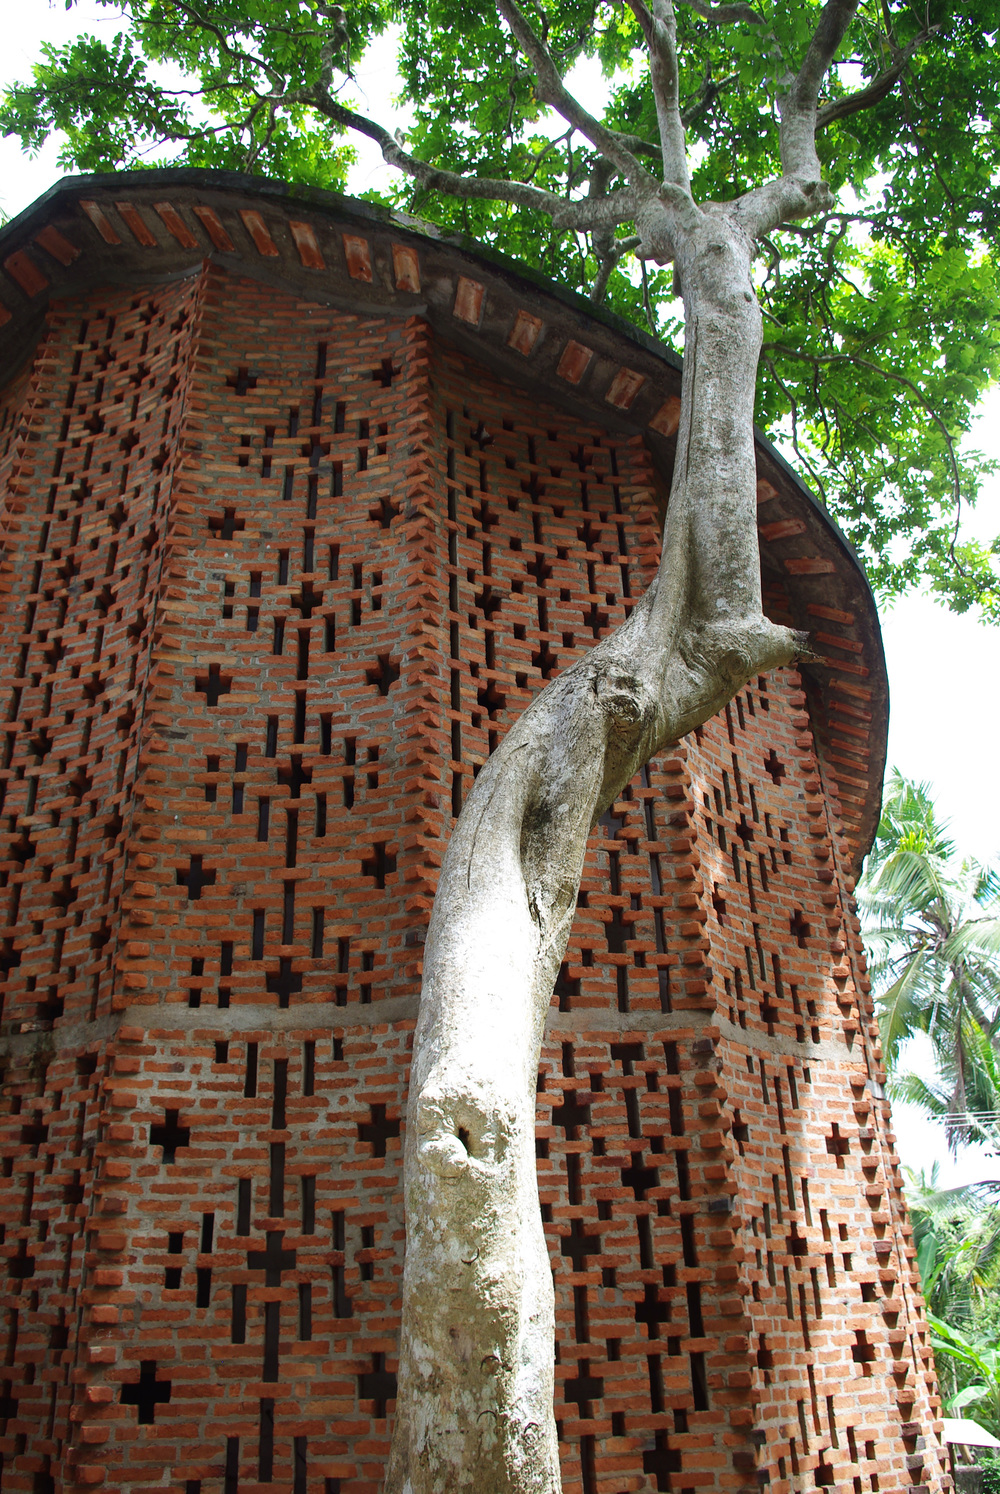 Computer Centre at the Centre for Development Studies, located in Ulloor, Trivandrum, completed in 1990 Added at a later date than the original campus buildings, the Computer Centre features a unique double-skin brick wall.  The exterior enclosure is made of a series of short curved segments, adding structural stability to the thin wall.  The internal enclosure was designed to accomodate the requirements of the computer labs.  The space between the two boundaries houses offices and storage areas.  The two walls regulate sunlight, eliminating glare while allowing natural light to penetrate the interior.